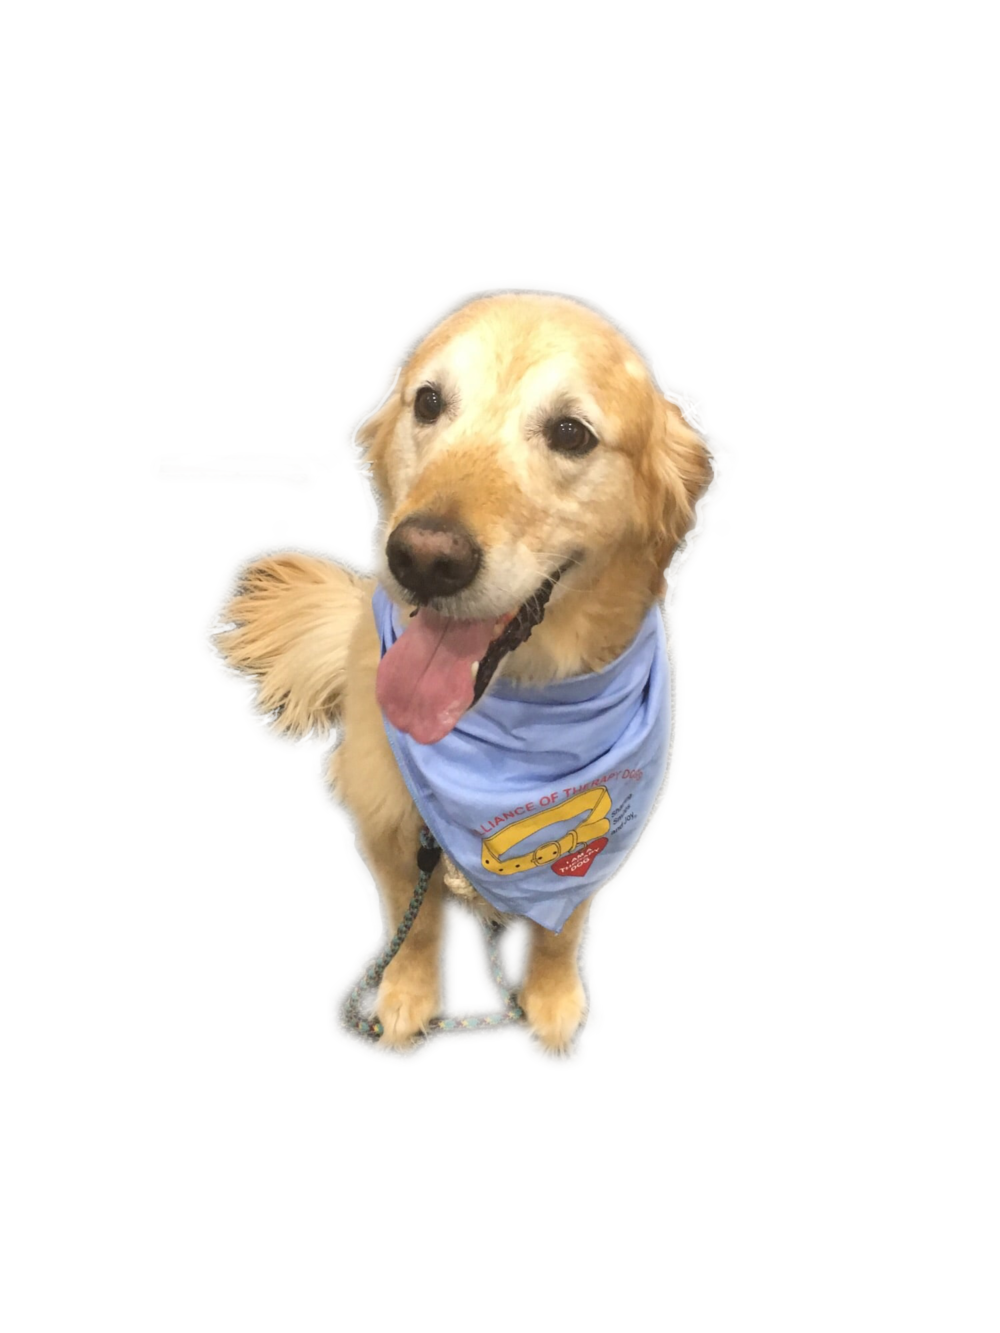 Comfort dog Wrigley is welcoming face for students at EC. Picture by Mallory Gross.